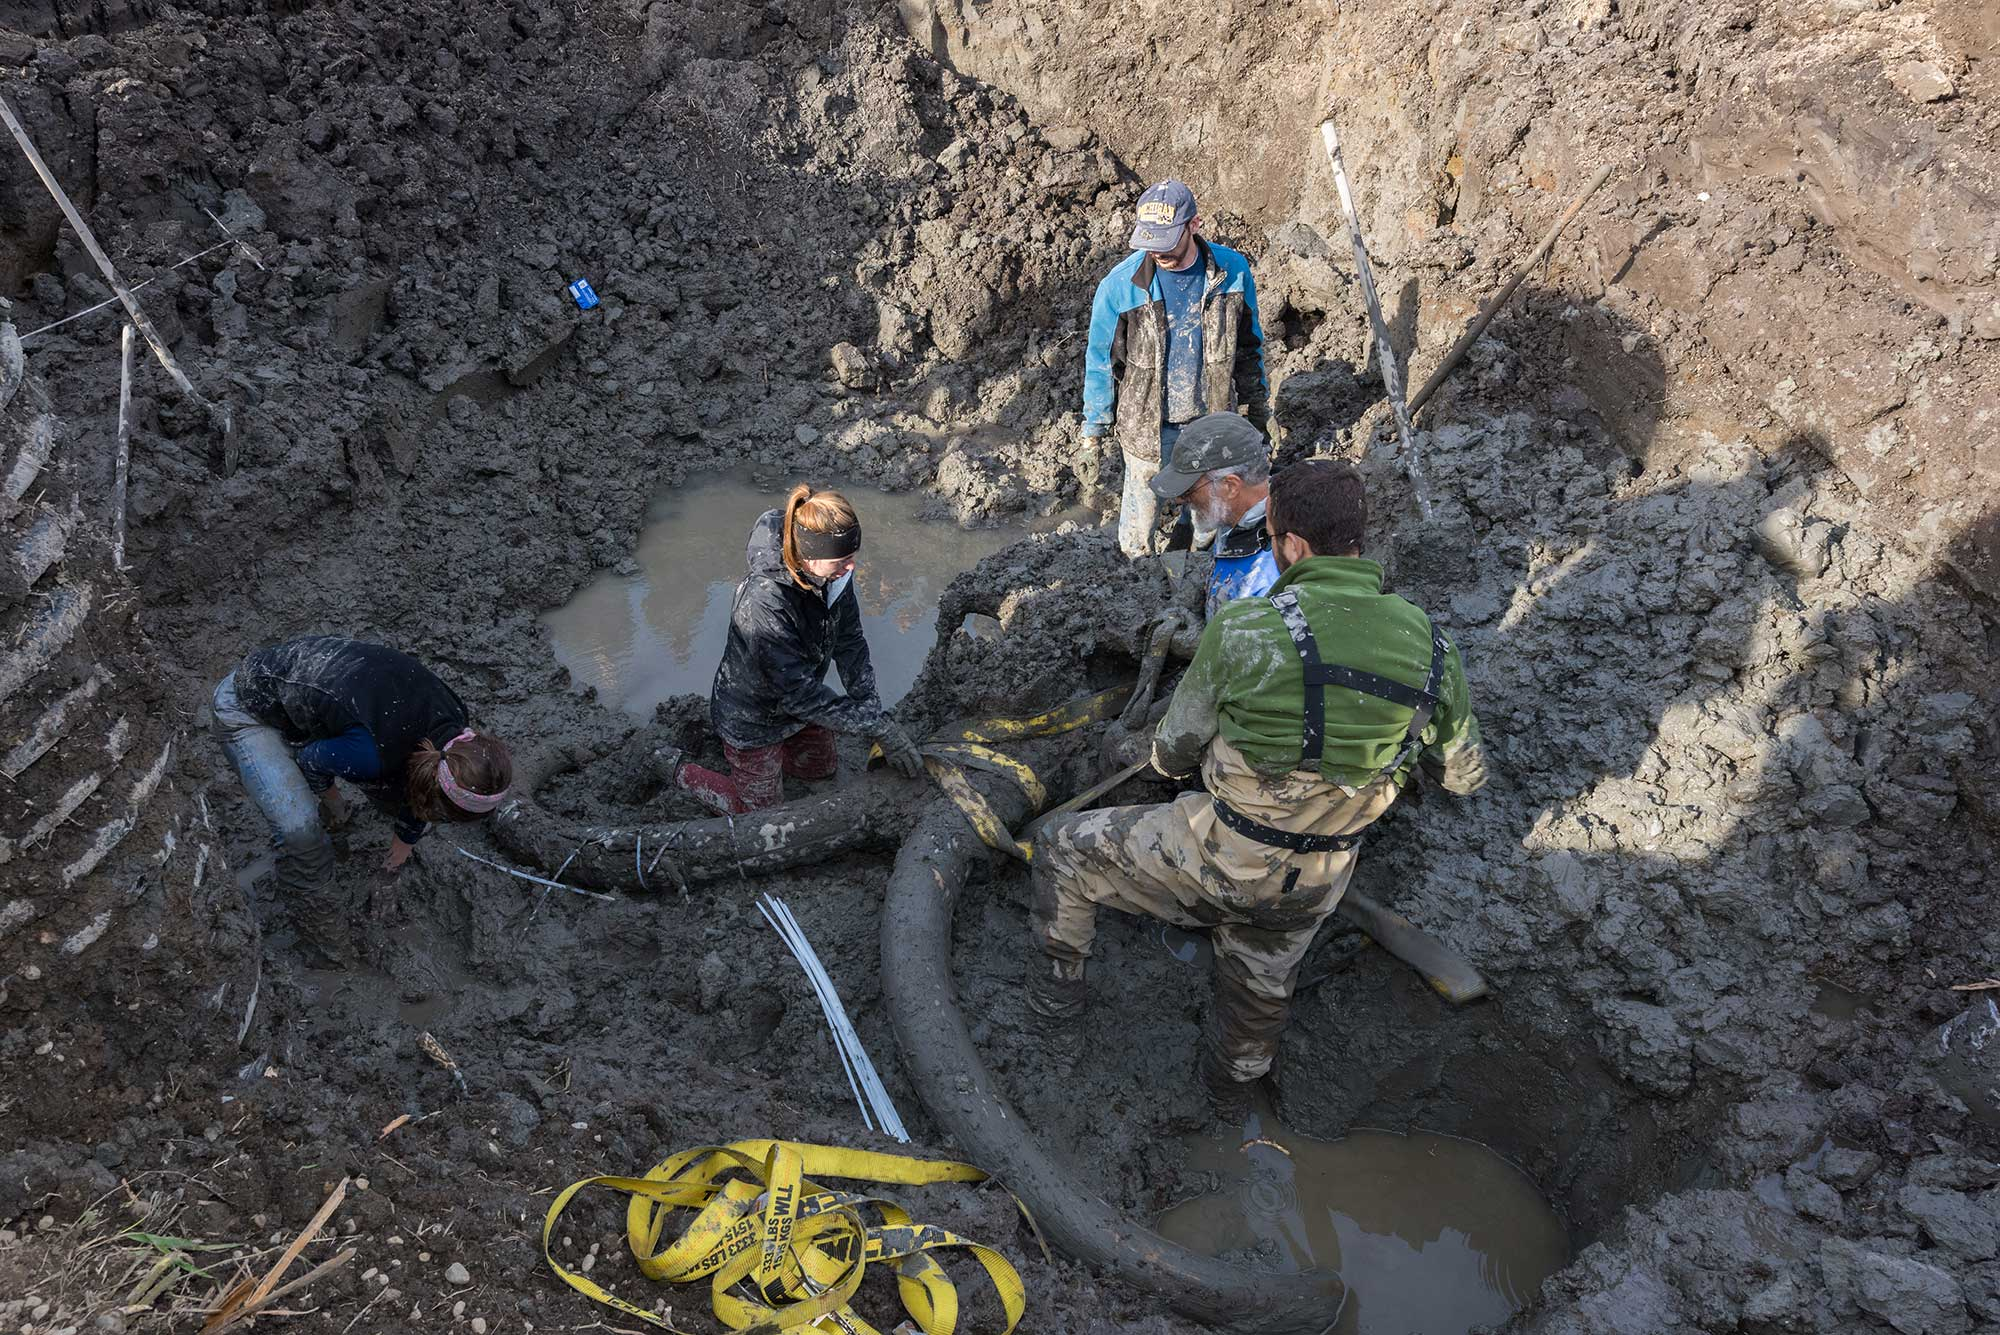 Butchered Mammoth Bones Unearthed in Michigan